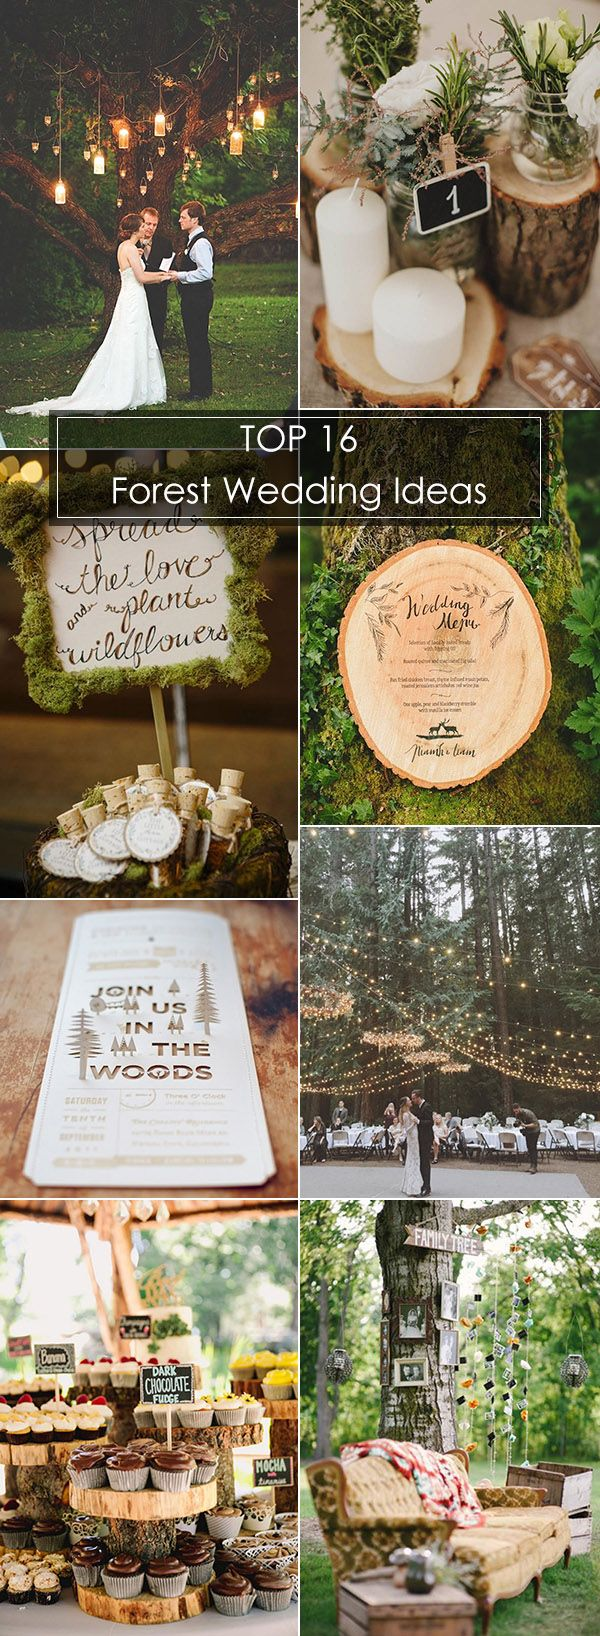 Forest wedding ideas, to blend the natural world in to your special day! #wedding #nature #rustic